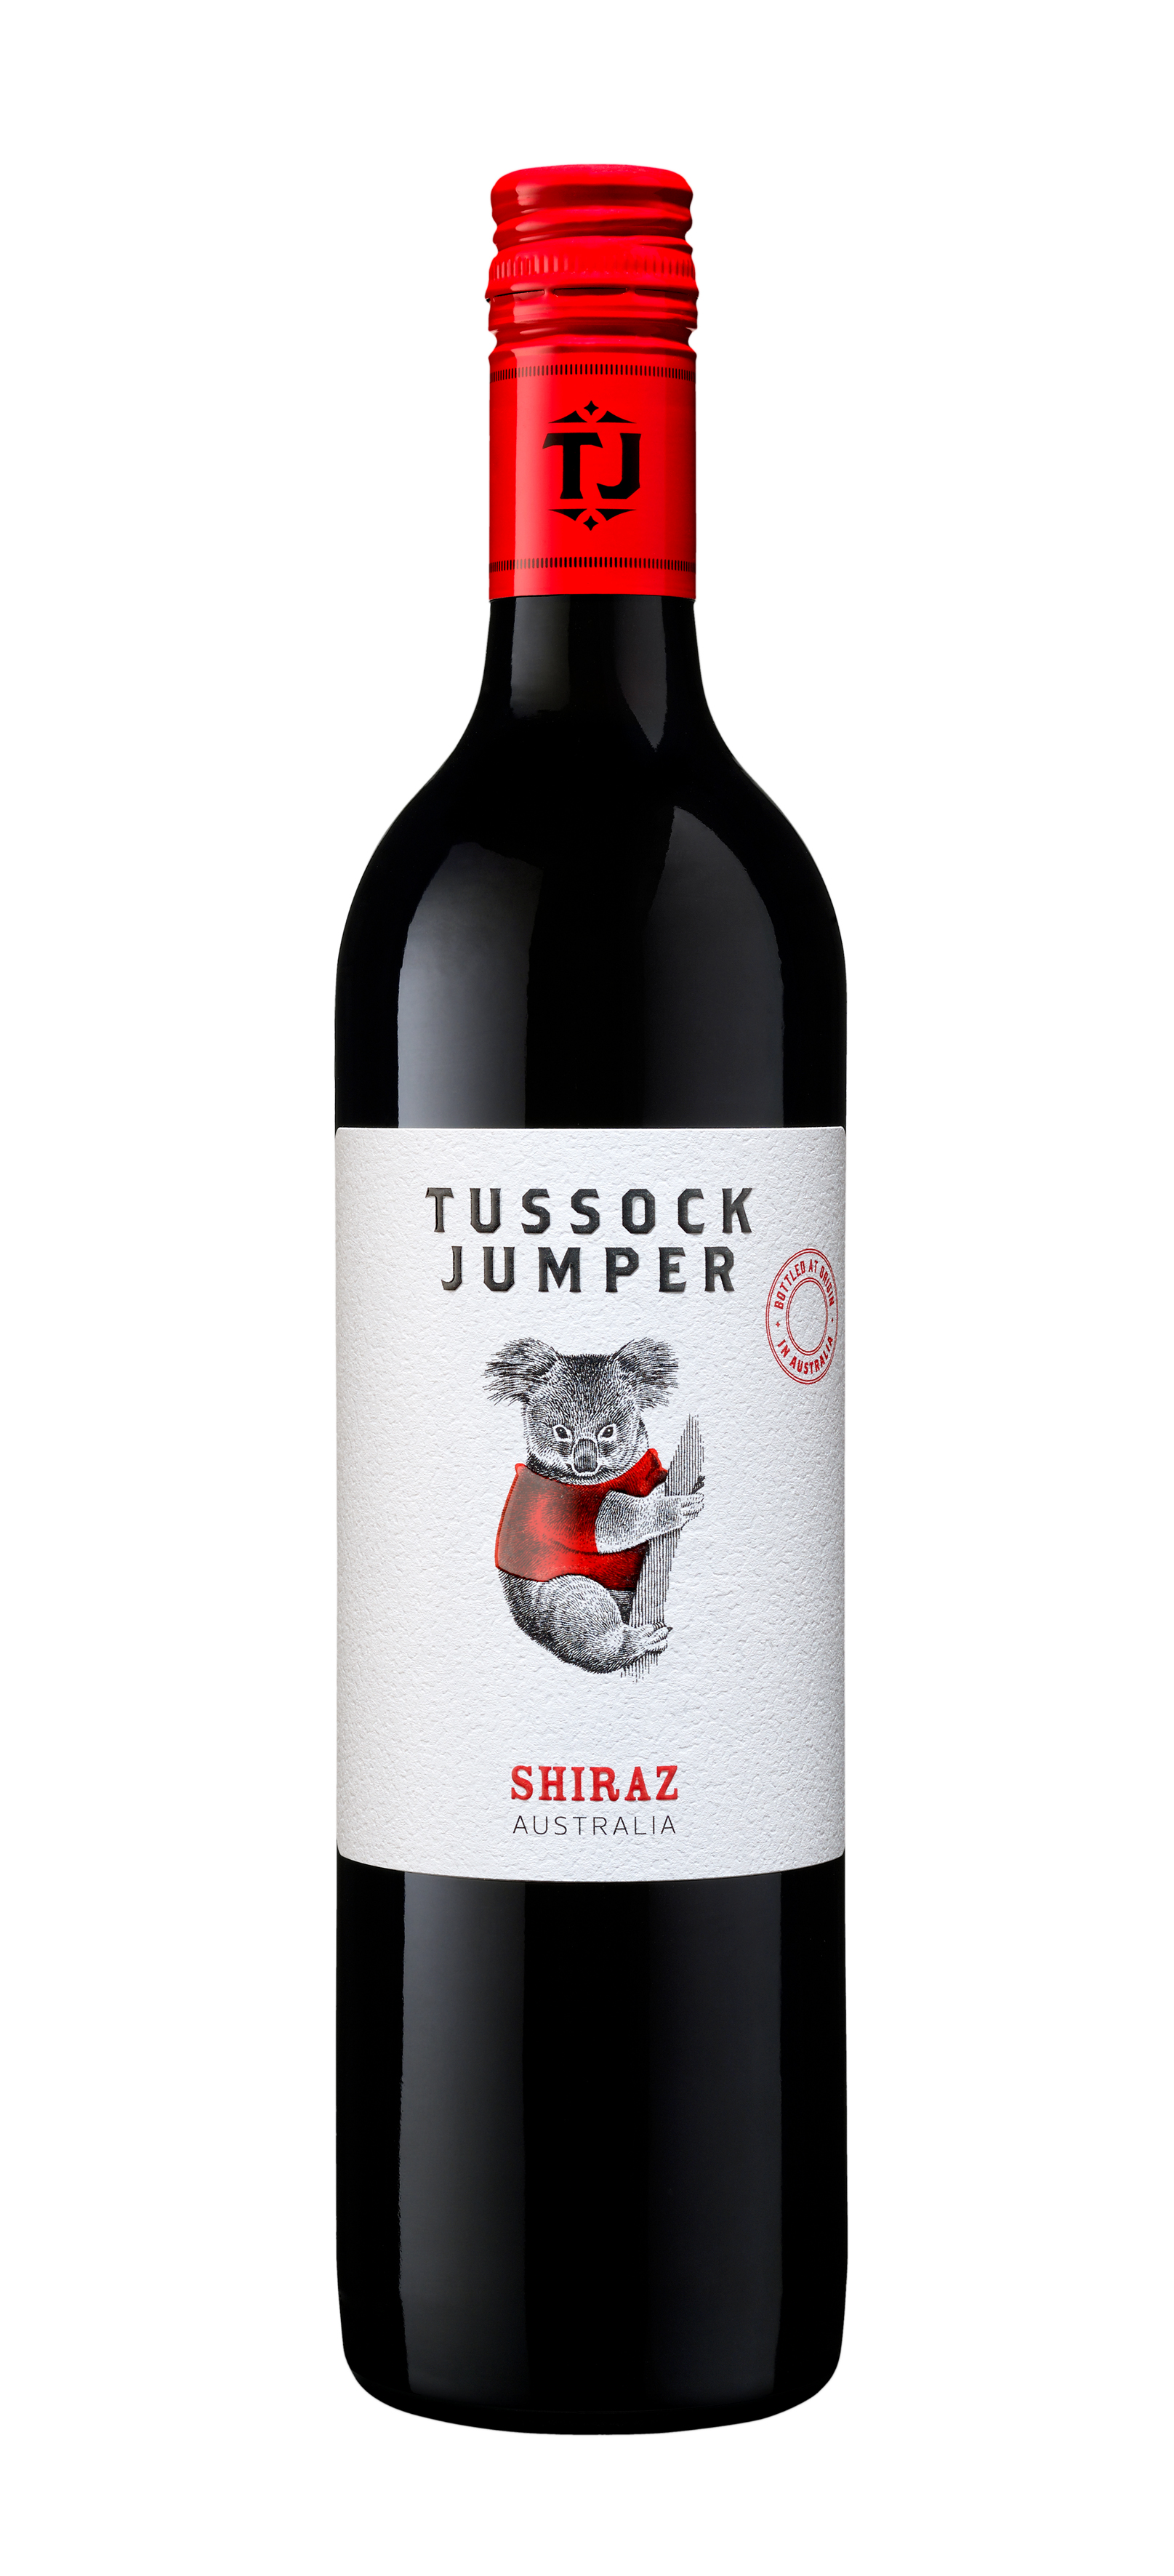 Tussock Jumper Shiraz